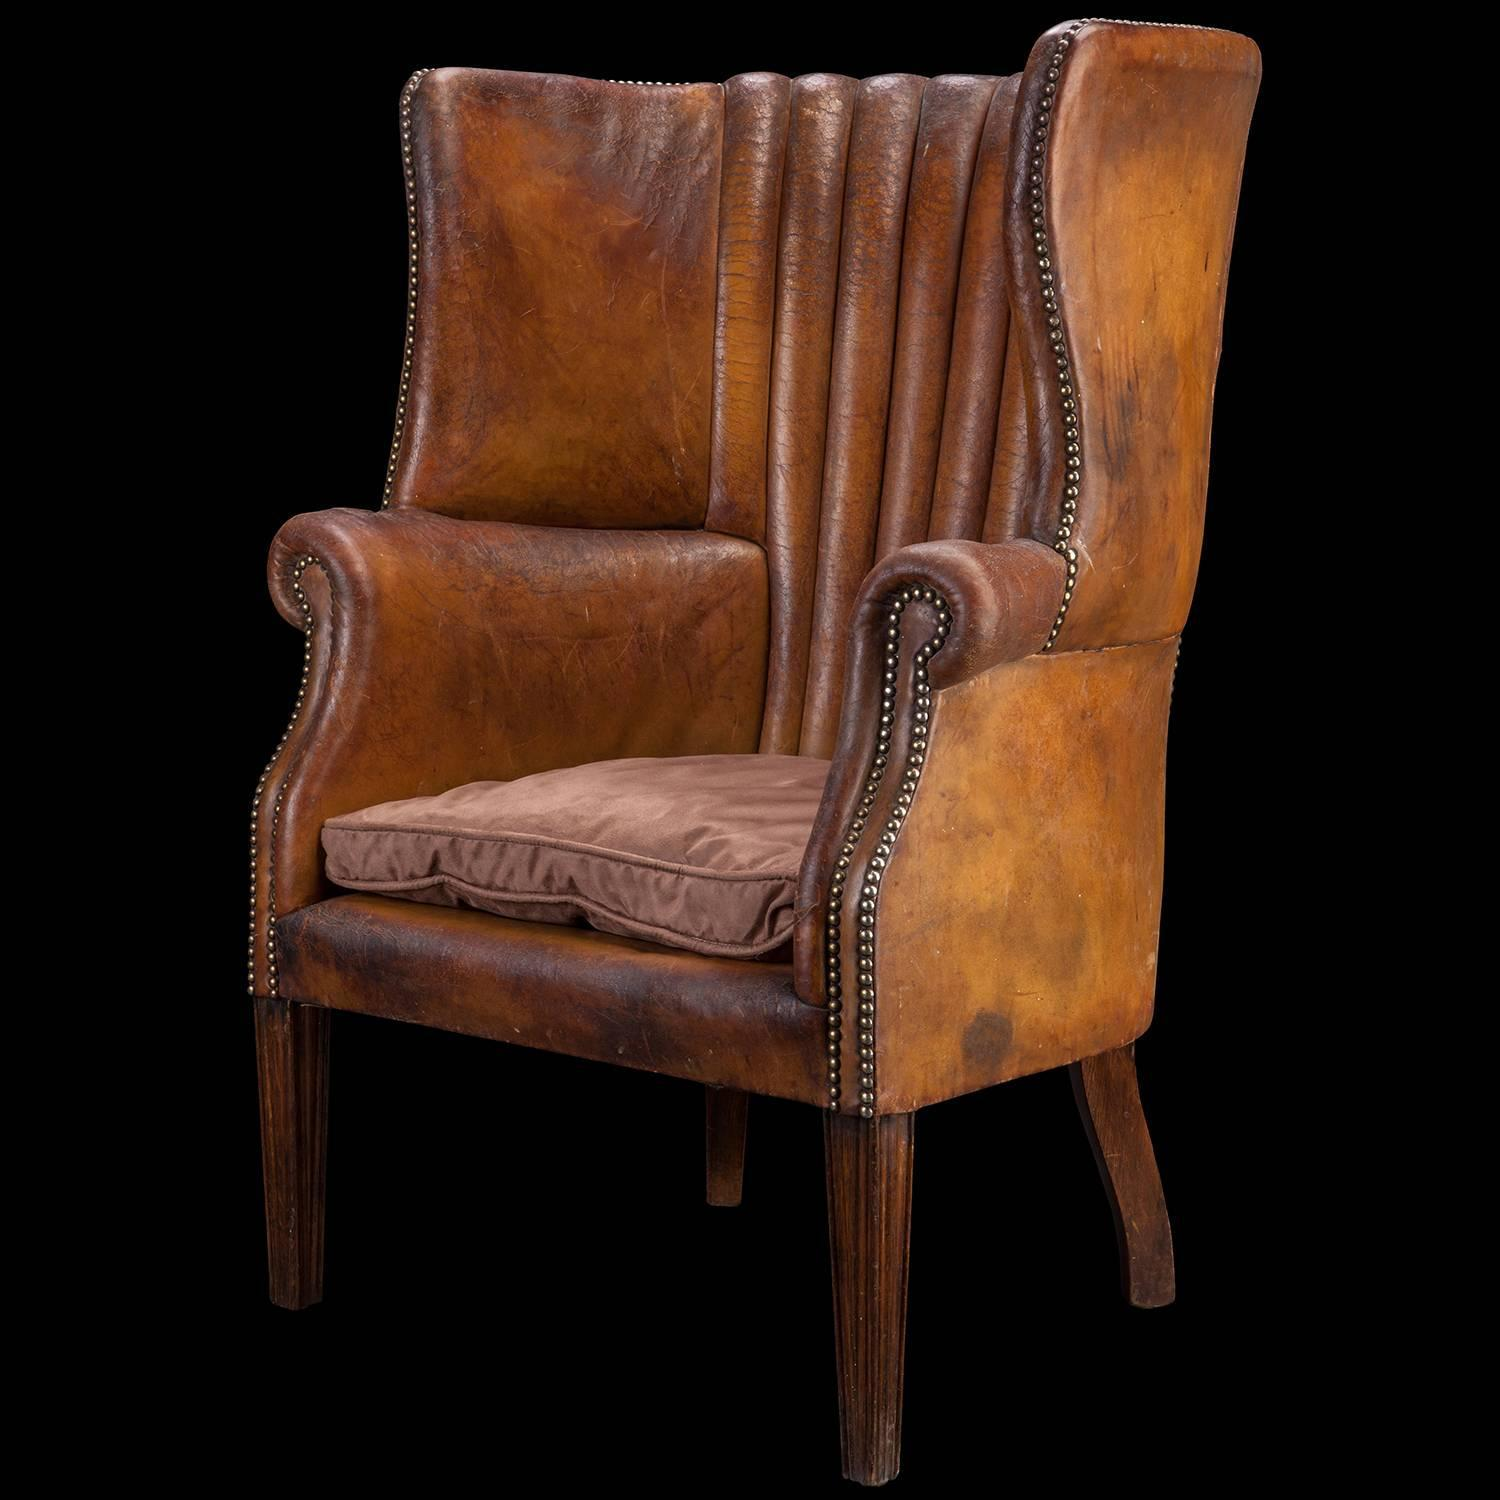 Barrel Back Leather Wing Chair For Sale At 1stdibs